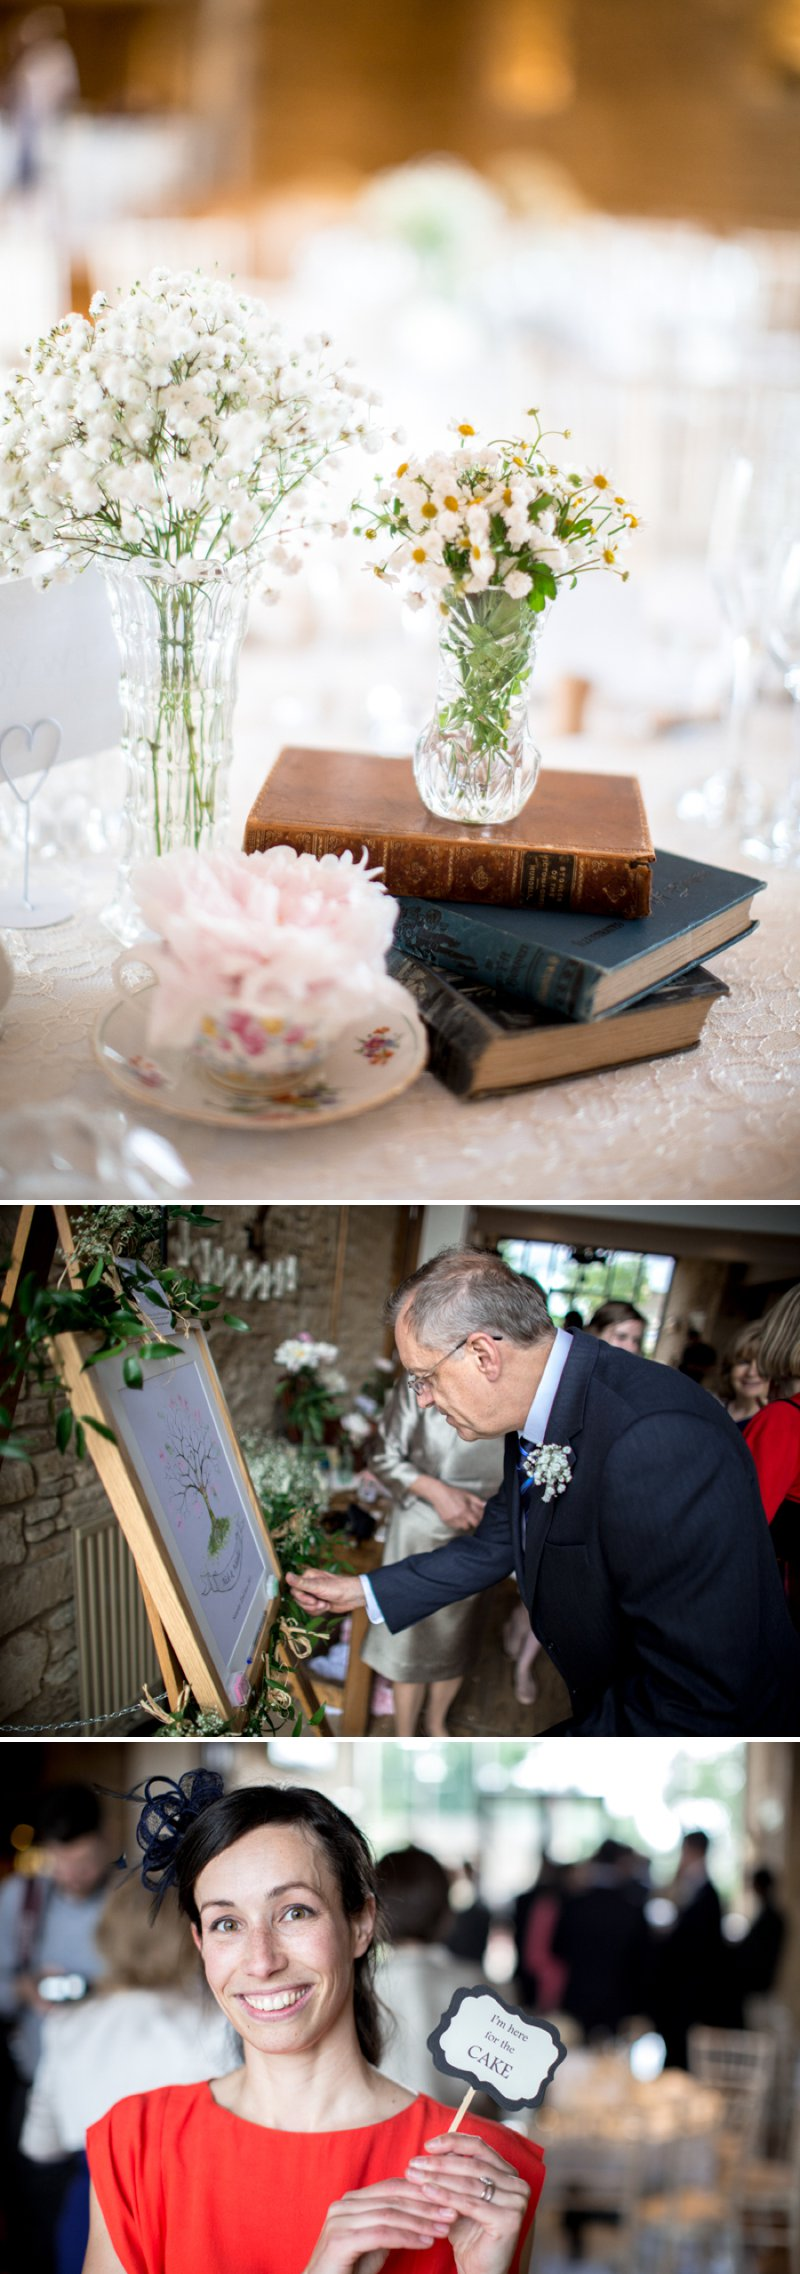 A Pretty Barn Wedding In The Cotswolds At The Great Tythe Barn With Bride In Pronovias And Groom In Reiss With Decor From The Vintage Hire And Images From Richard Jones Photography6